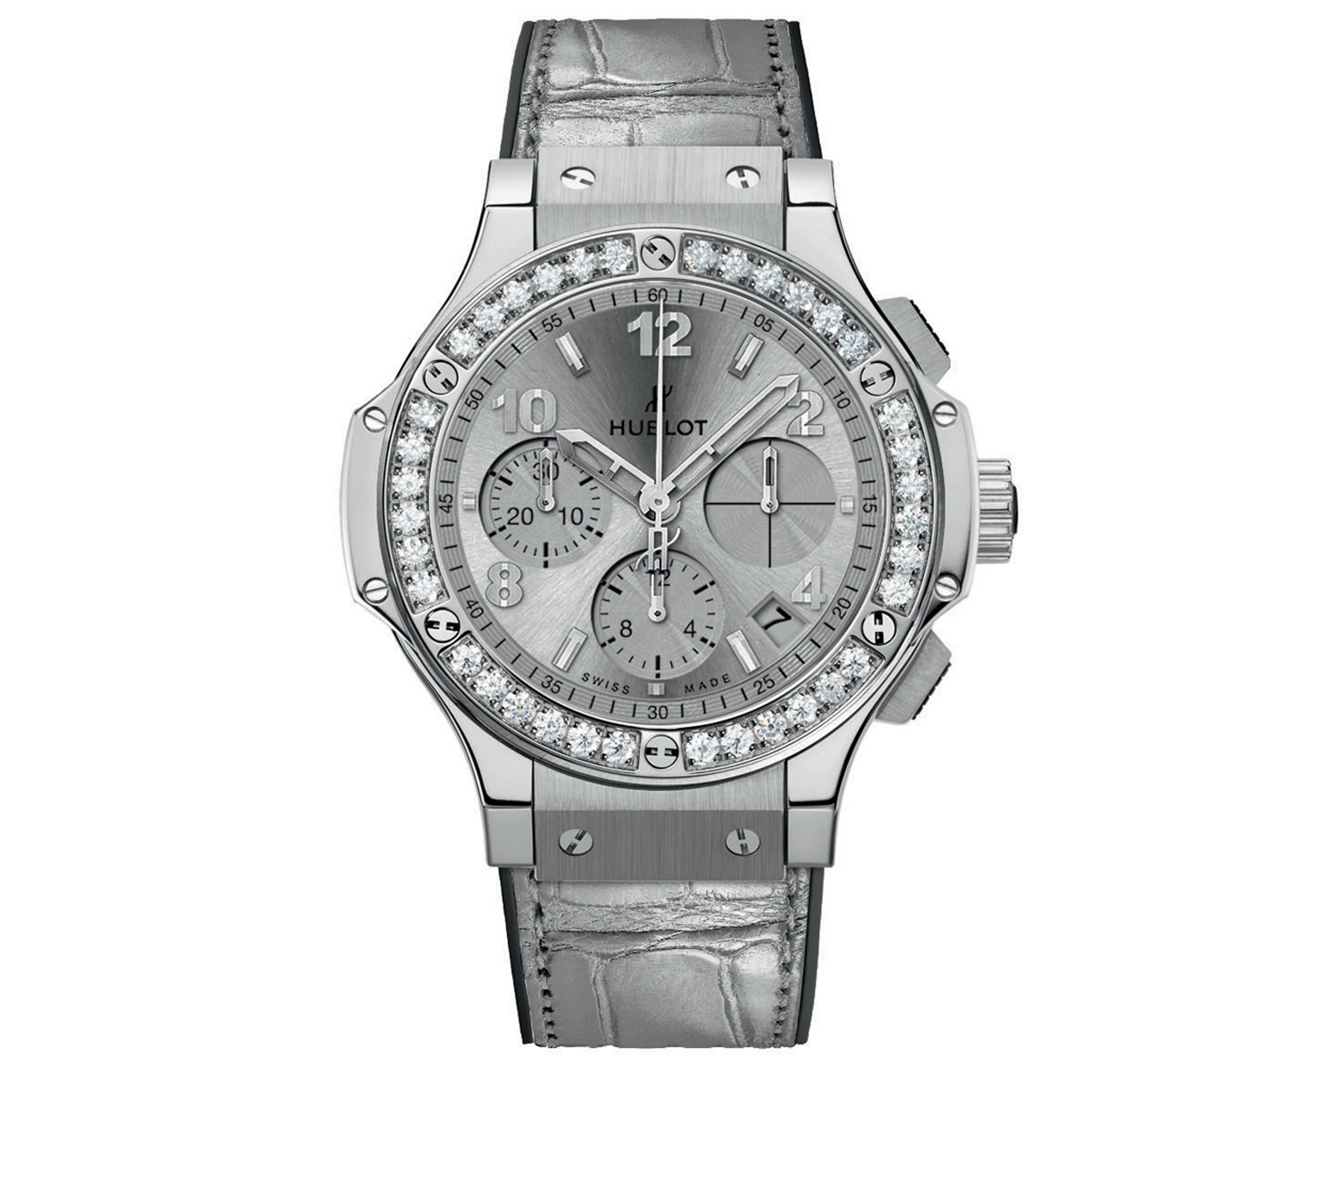 Часы Monochrome HUBLOT Big Bang 341.SX.4310.LR.1204 - фото 1 – Mercury